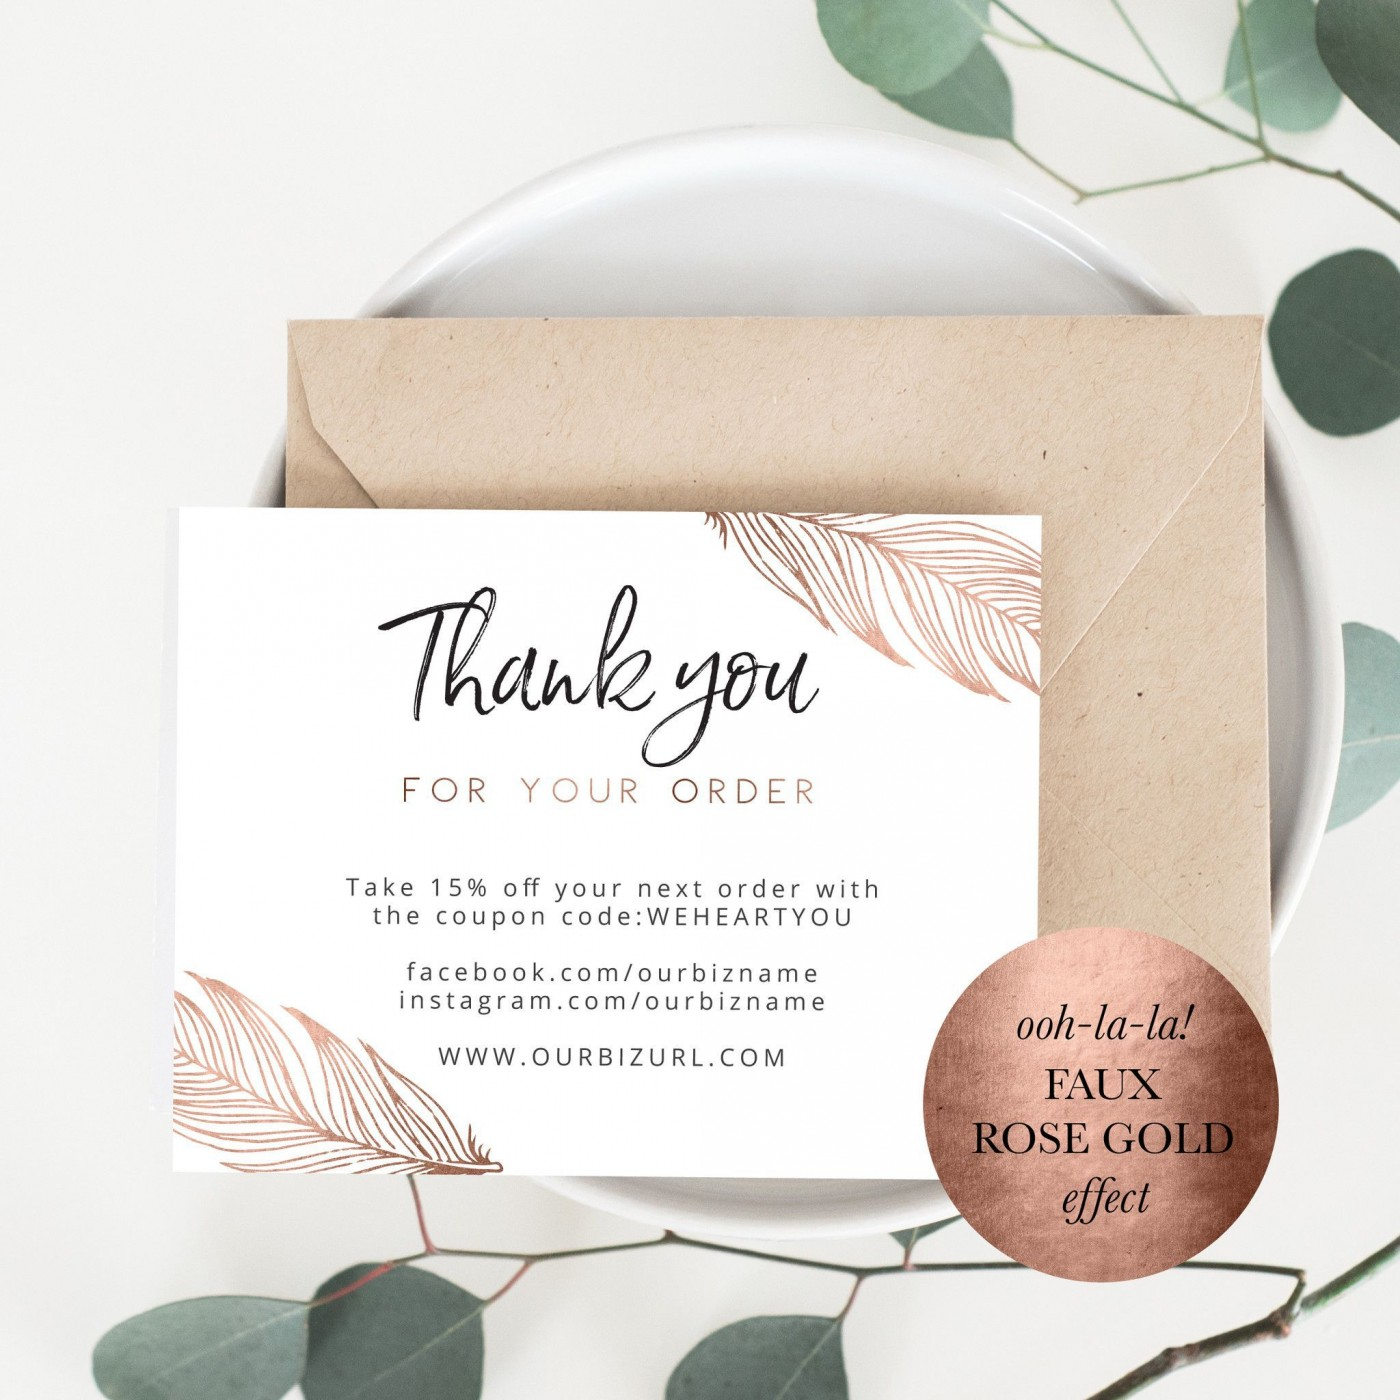 000 Phenomenal Thank You Note Template Pdf High Def  Letter Sample For Donation Of Good1400